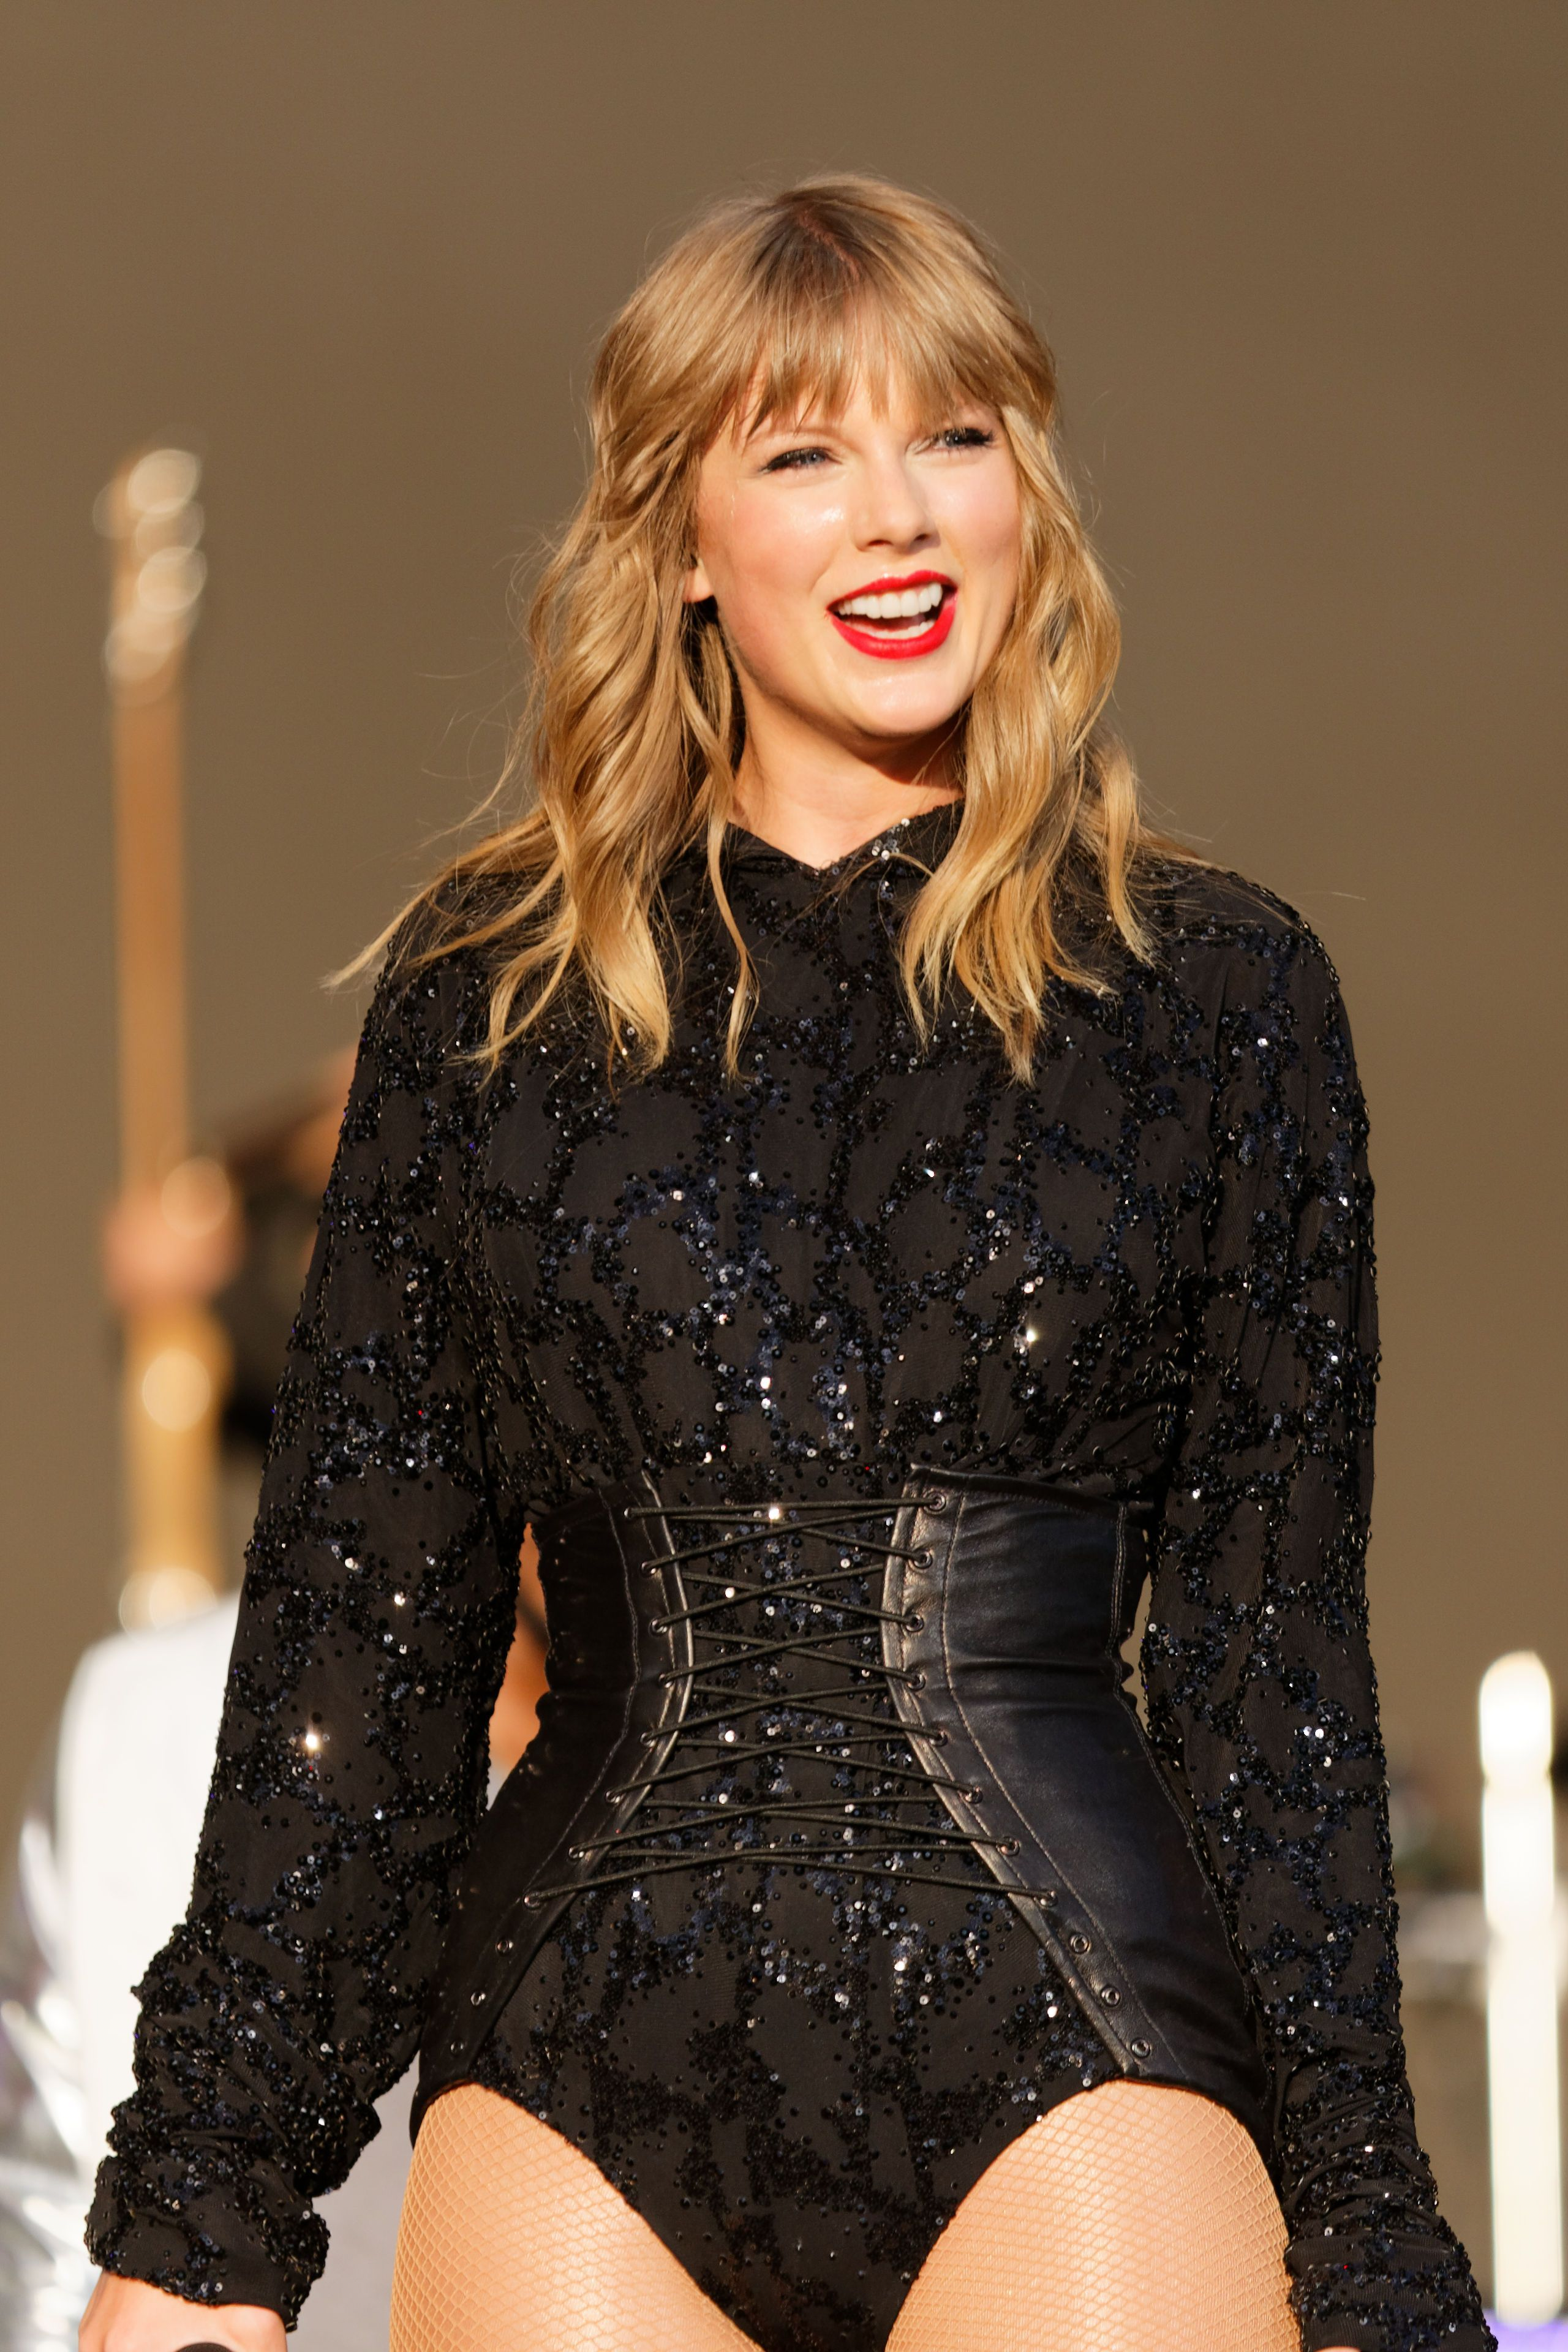 Taylor Swift performs at the BBC Radio 1 Biggest Weekend